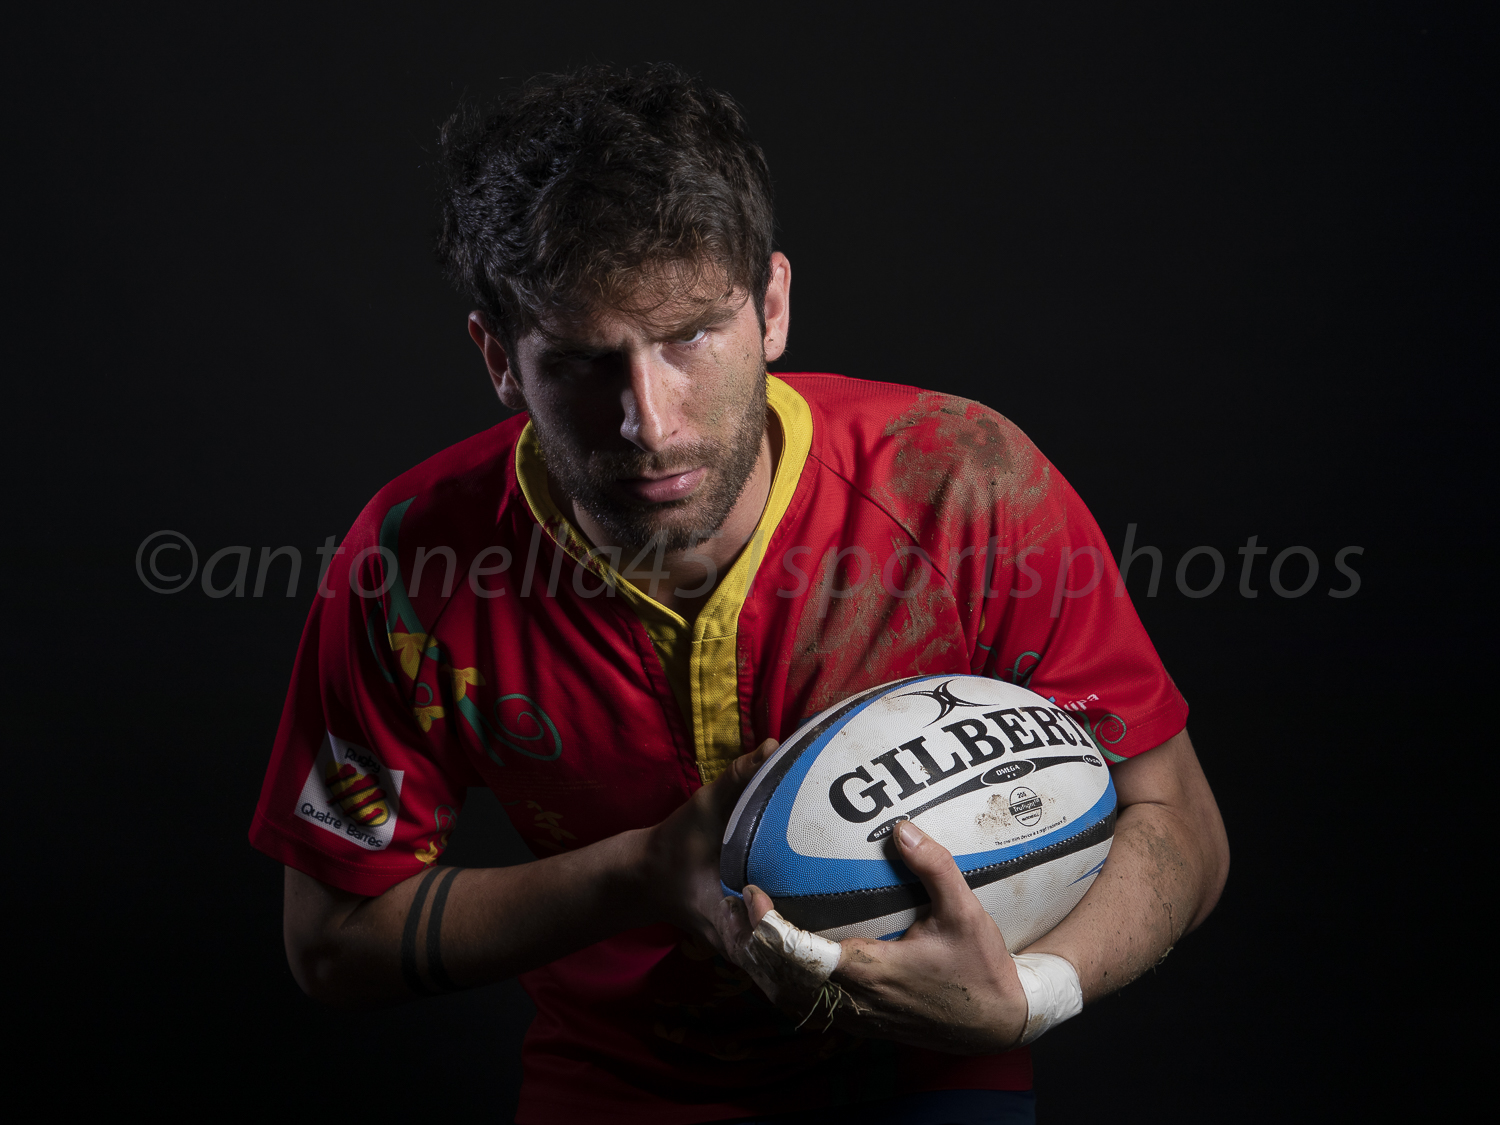 Sergio Sancho - Rugby Player - RC l'HOSPITALET